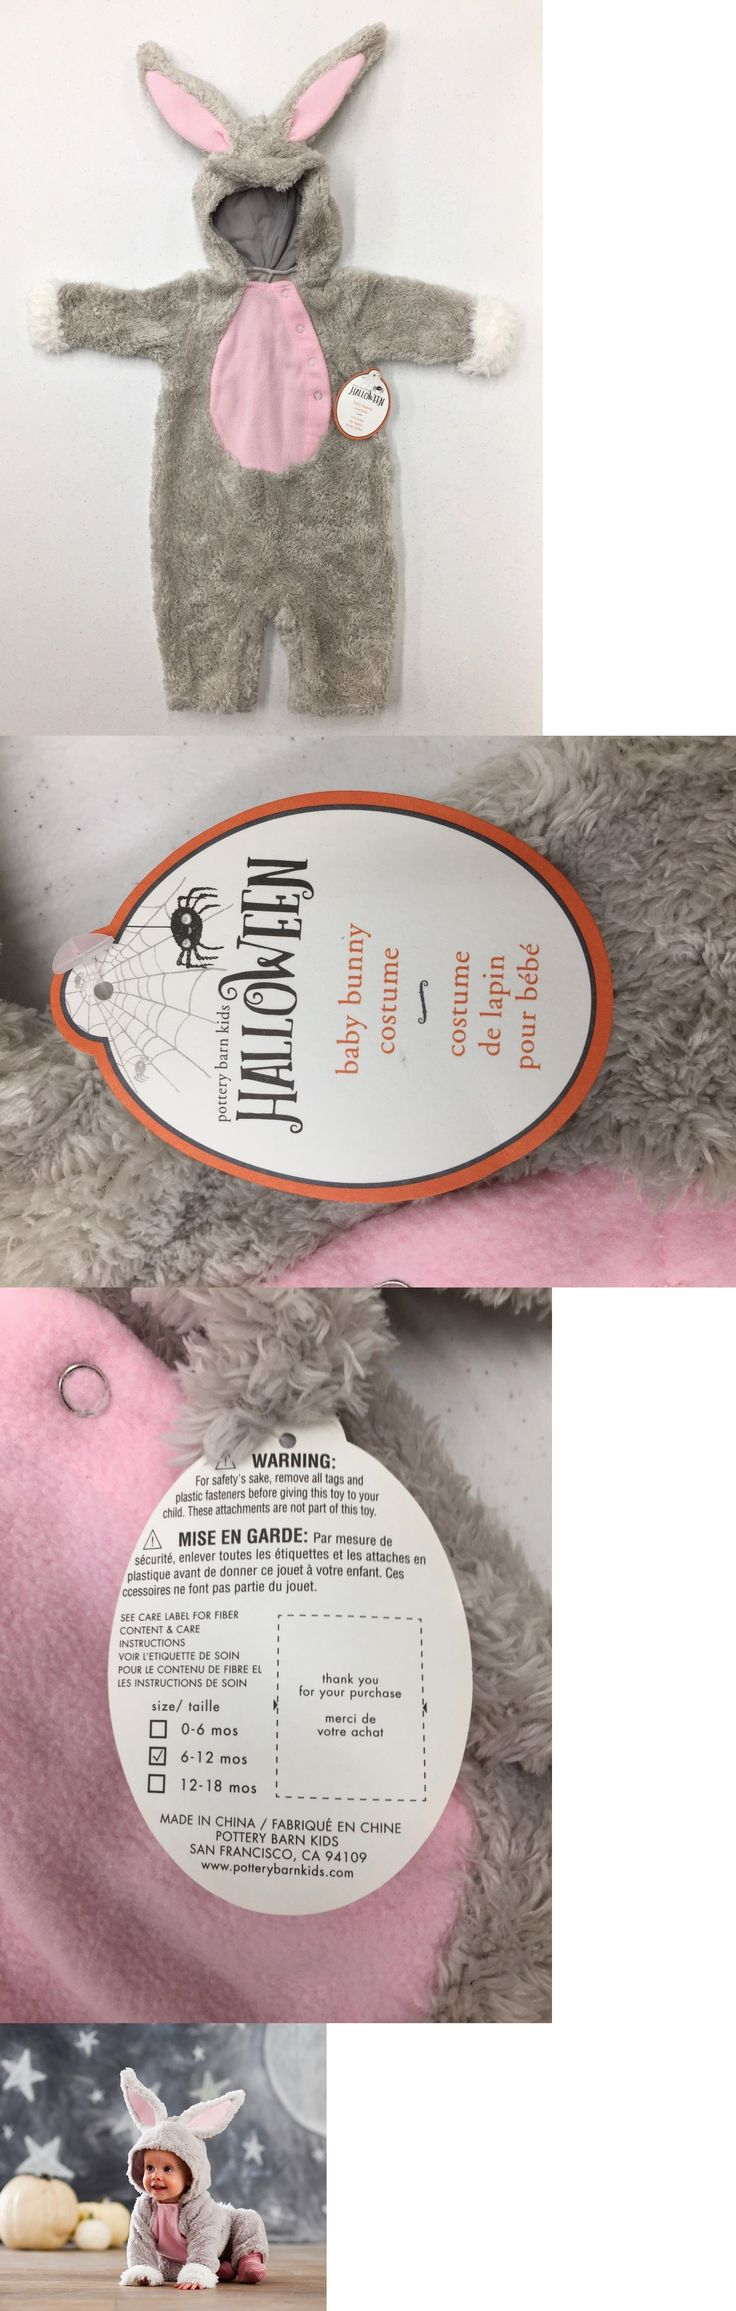 Kids Costumes: New Pottery Barn Kids 1 Pc. Baby Bunny Halloween Costume 6-12 Months -> BUY IT NOW ONLY: $54.99 on eBay!